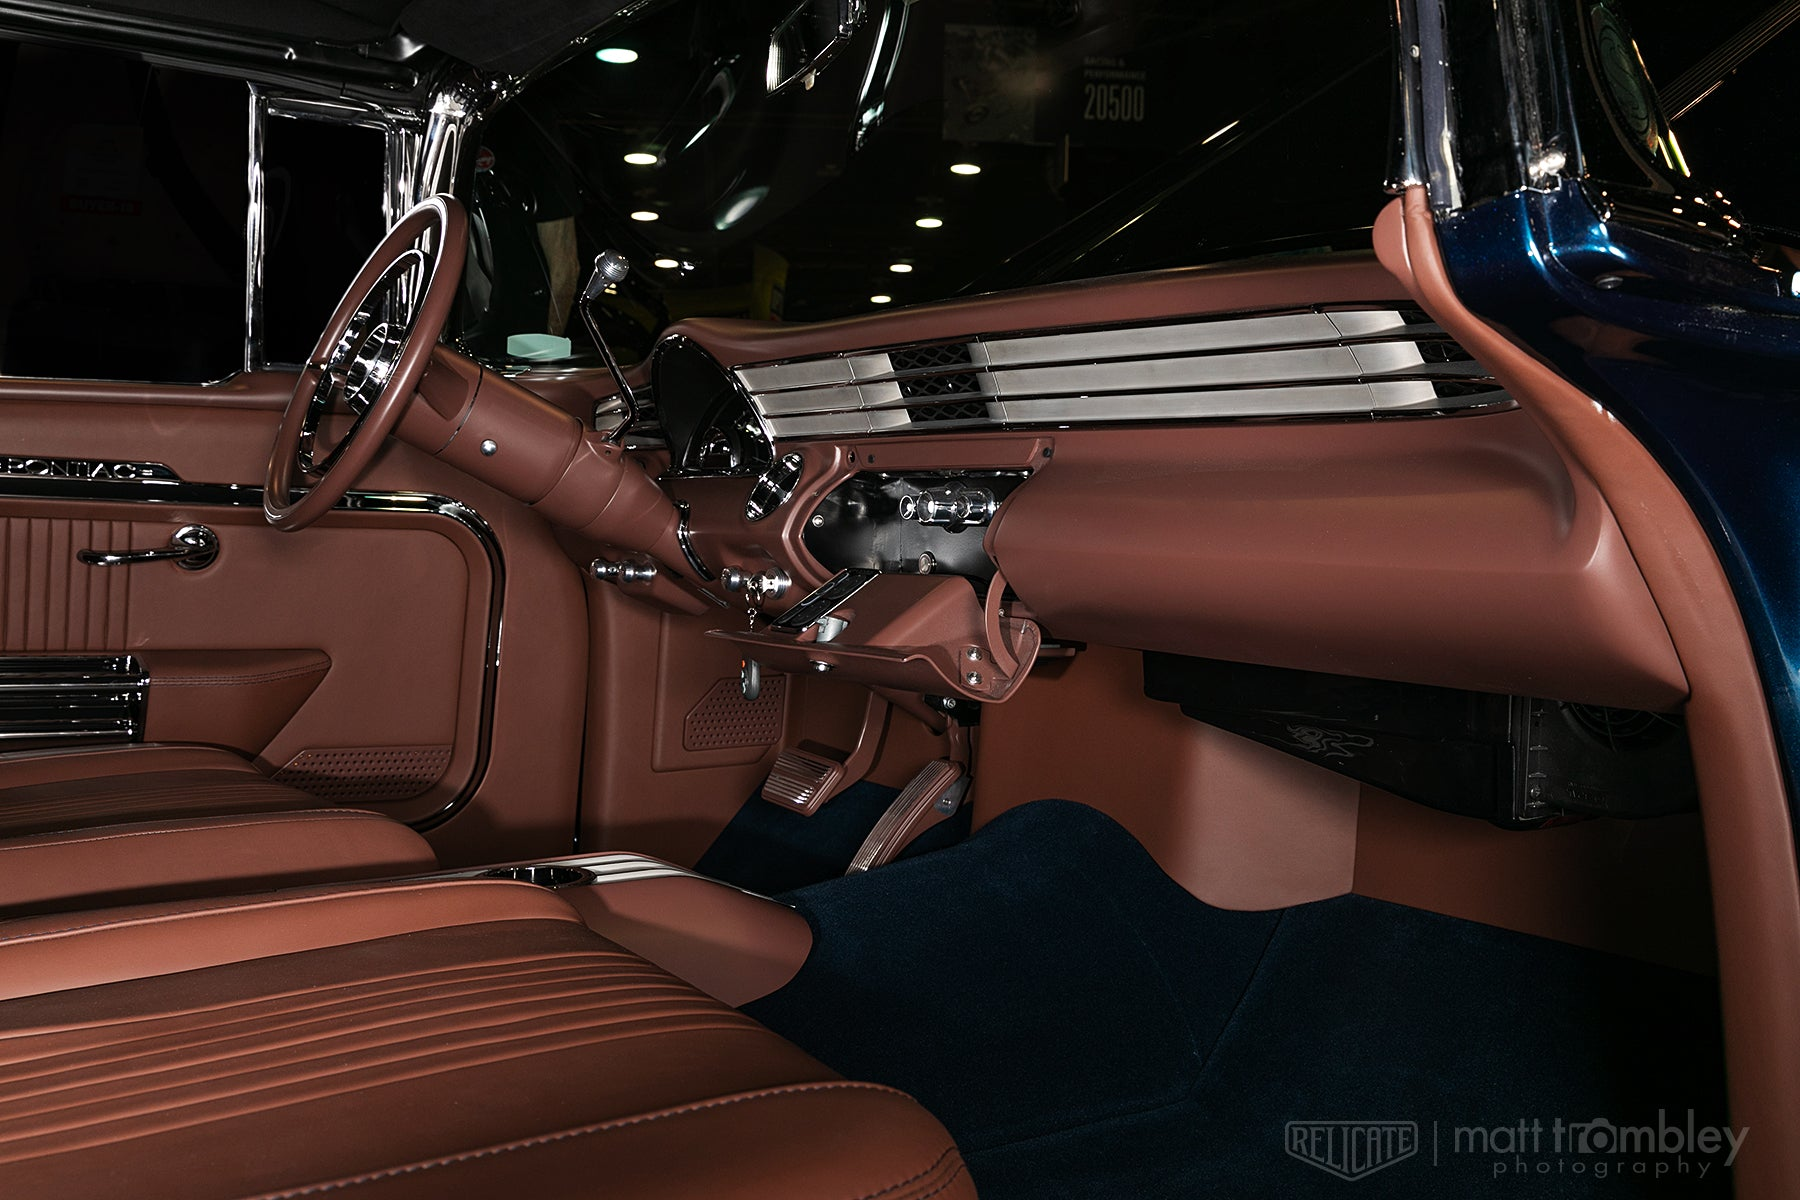 1956 Pontiac Leather Interior Relicate Napa Brandy Spice